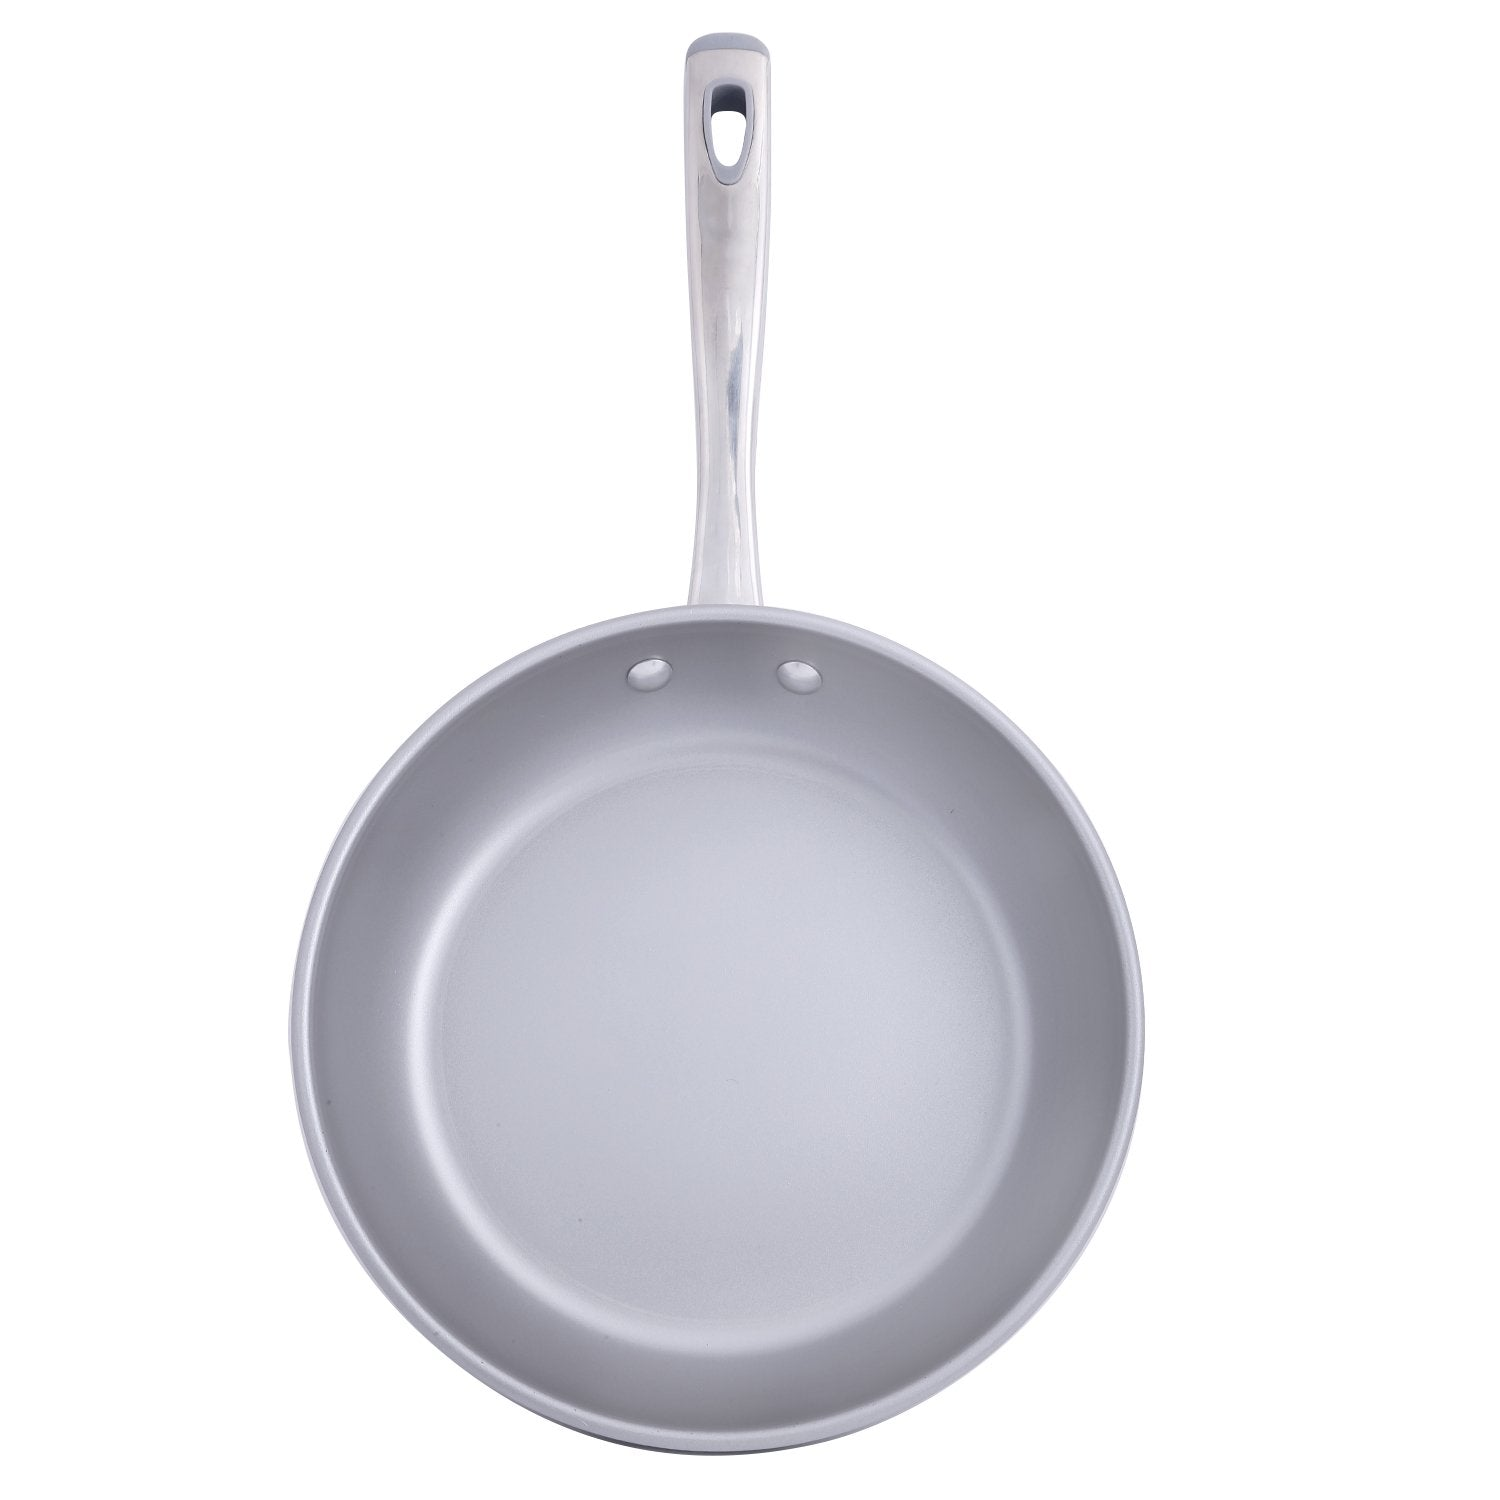 Prism Non-Stick Frypan 20cm, Silver [Induction & Gas Compatible] - PotsandPans